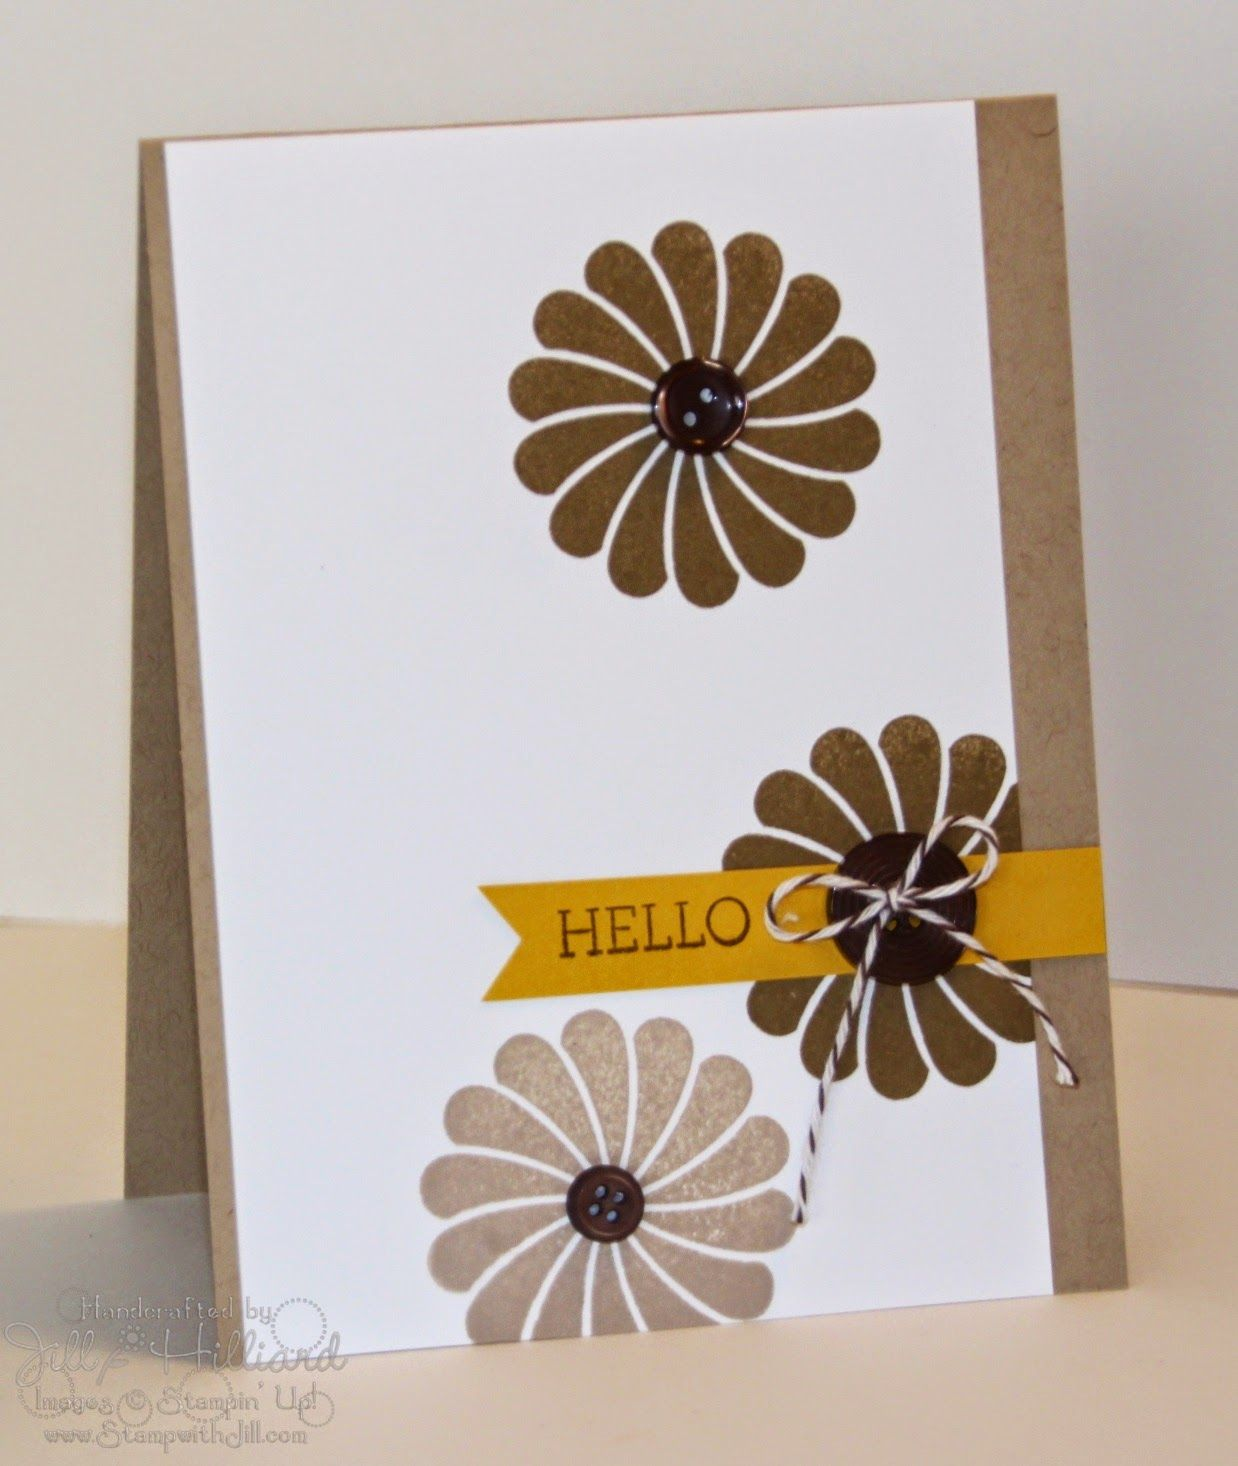 Jill's Card Creations, Crazy About You Stampin Up!